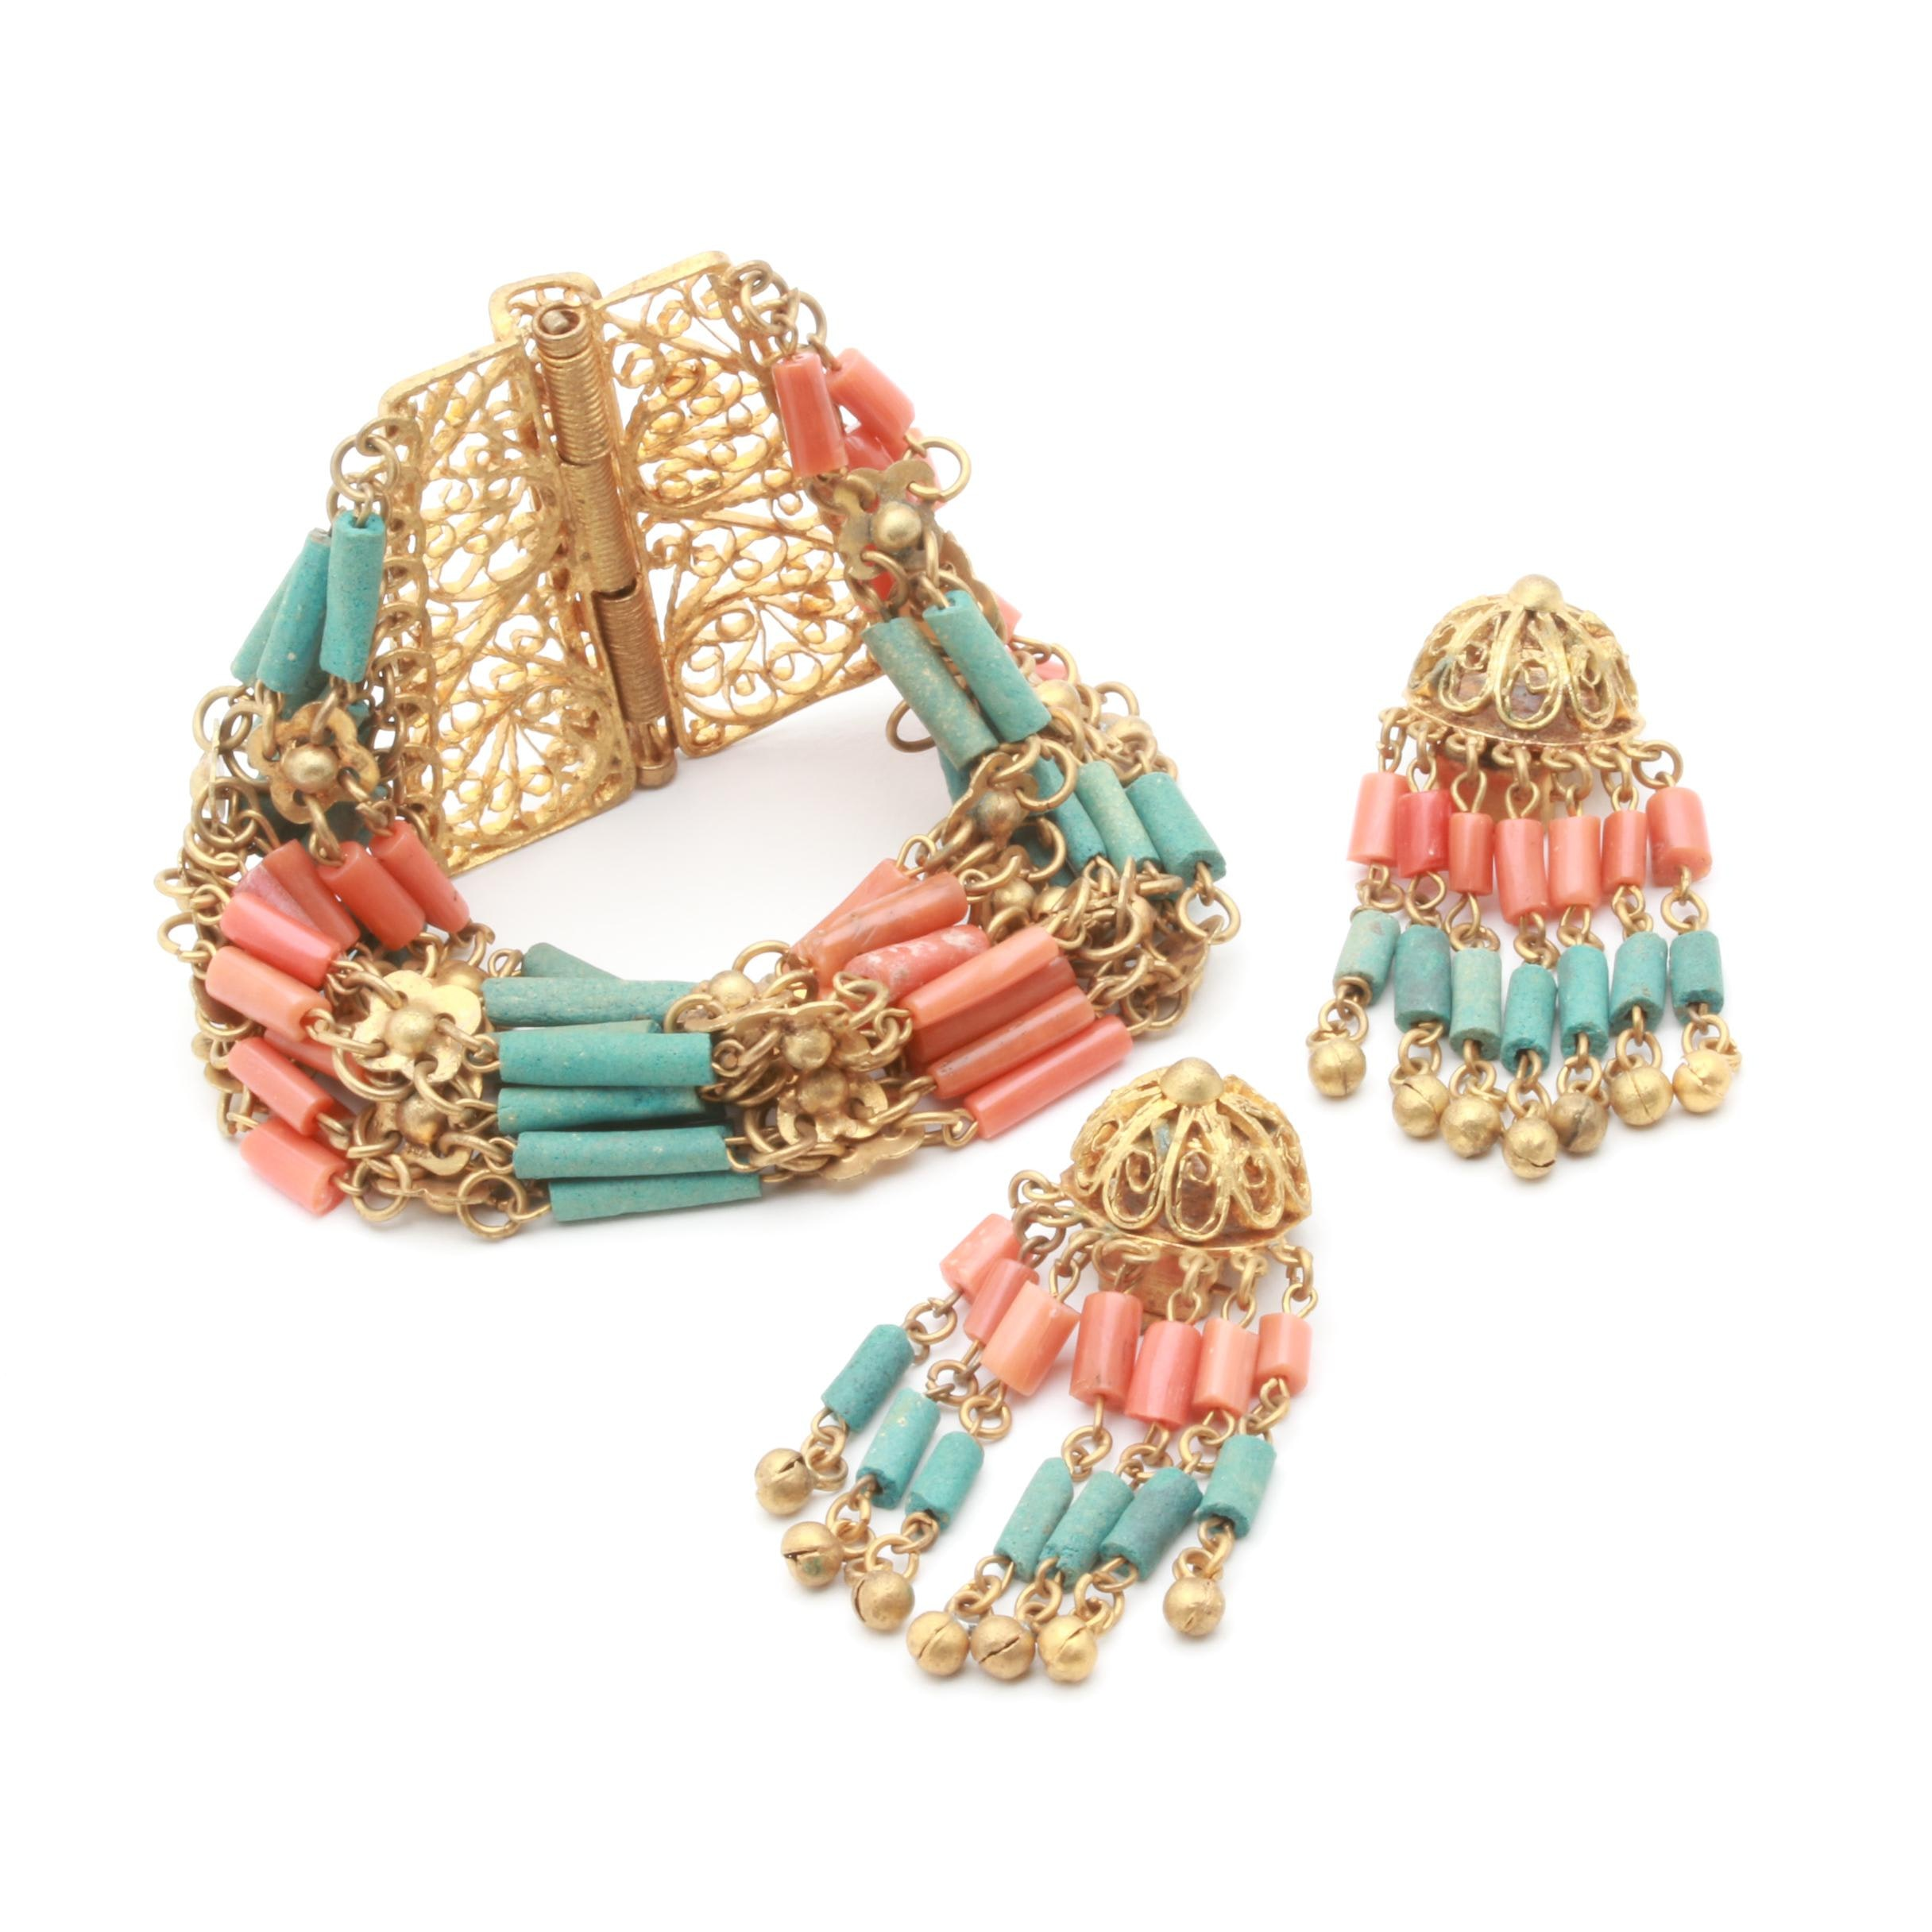 Circa 1920s-1930s Egyptian Revival Faience and Coral Demi Parure